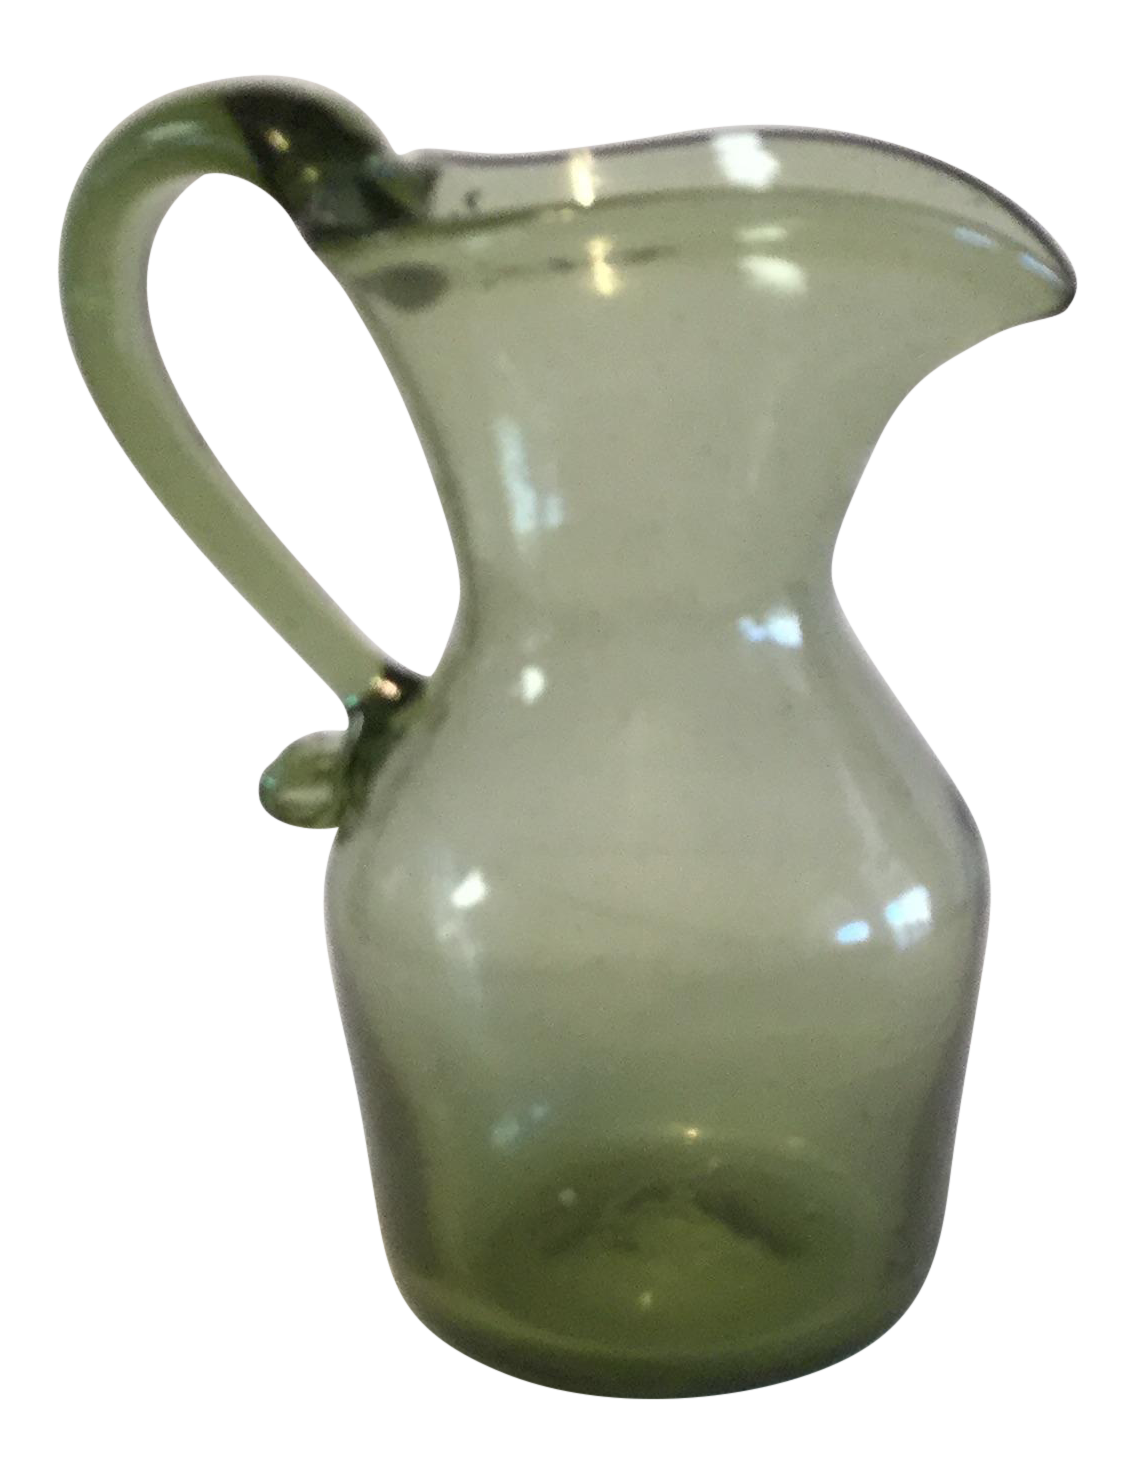 Hand blown green glass pitcher chairish for Kitchen cabinet trends 2018 combined with hand blown glass wall art